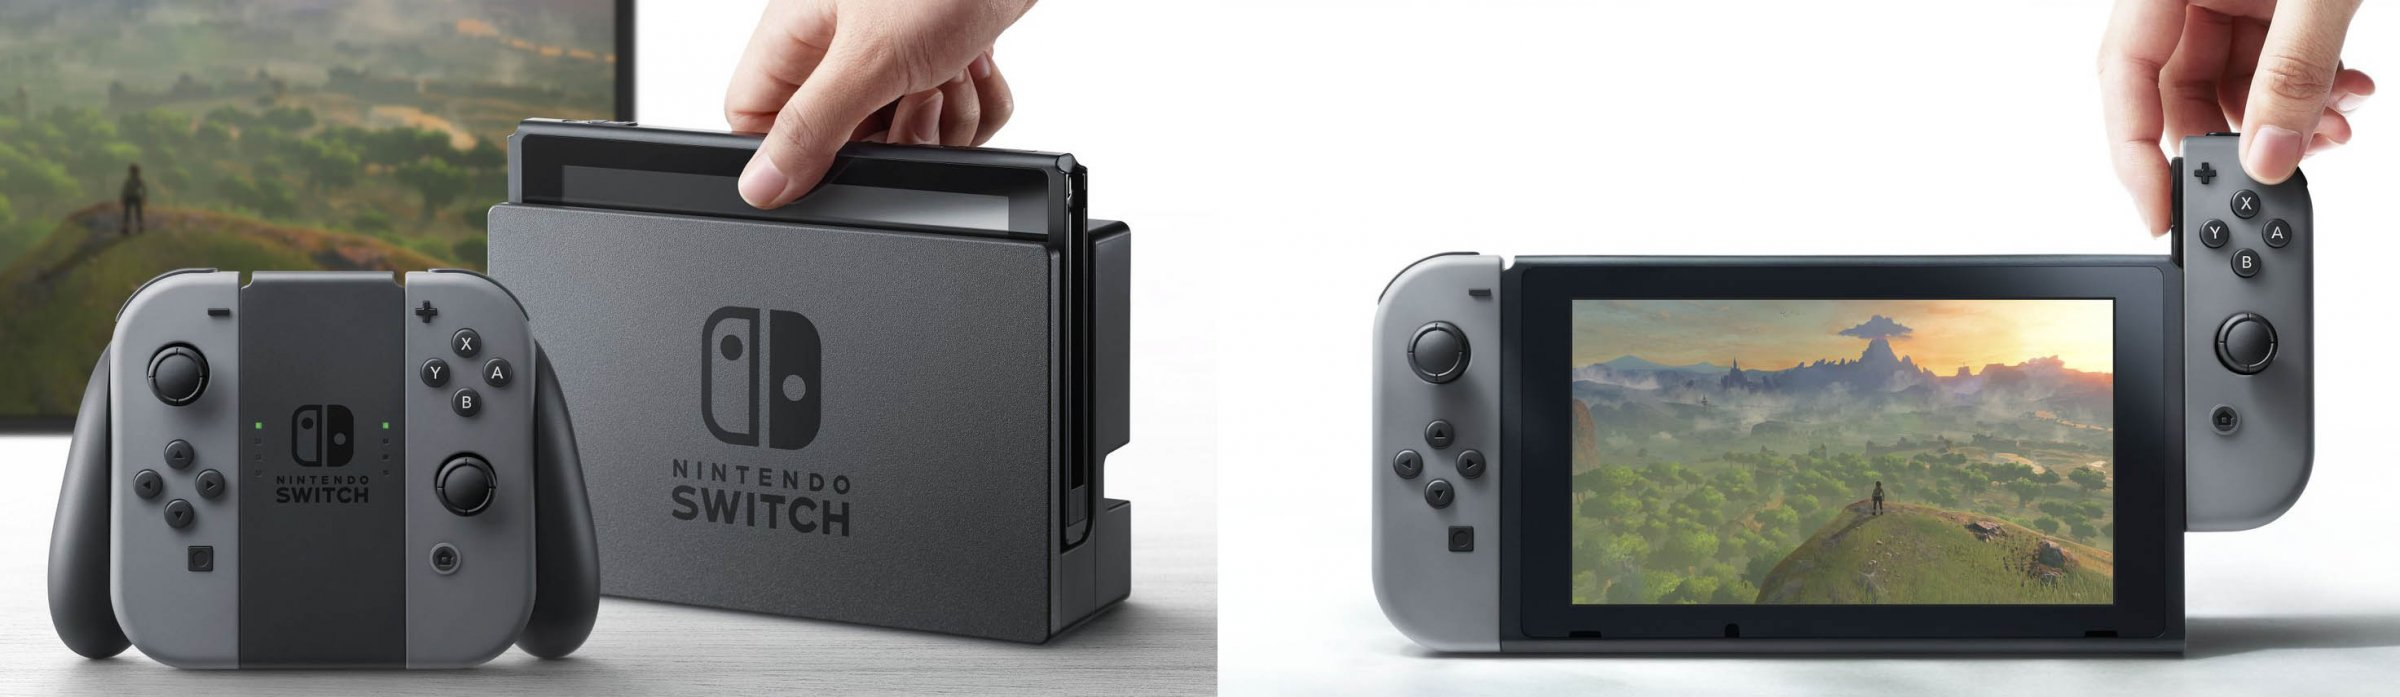 switch modes